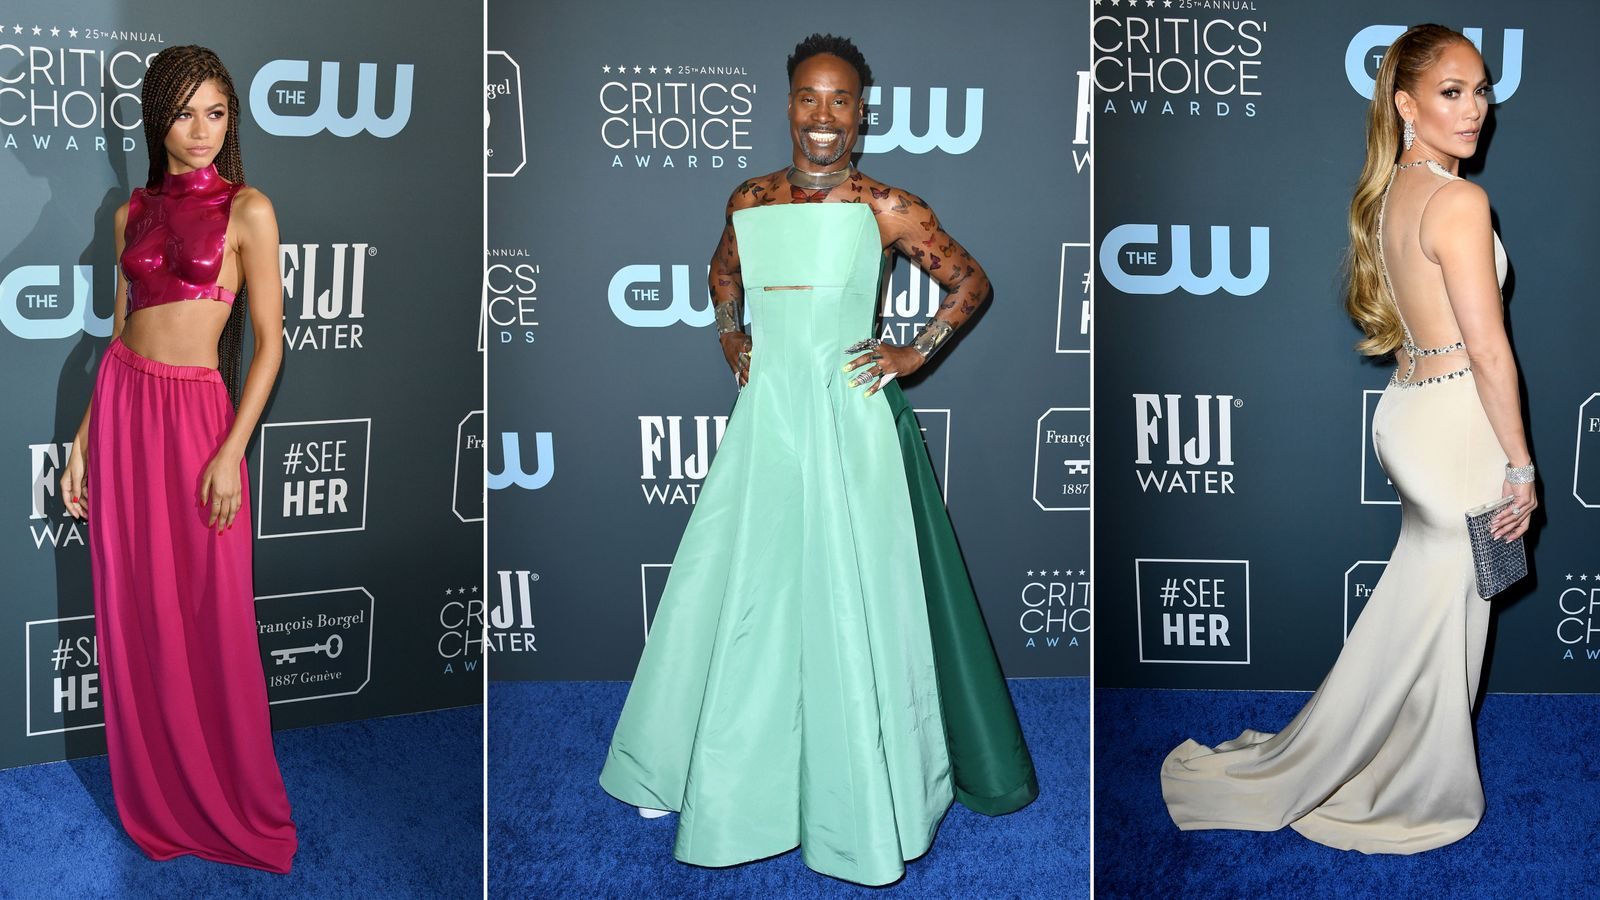 Critics' Choice Awards: All the dazzling looks from the red carpet